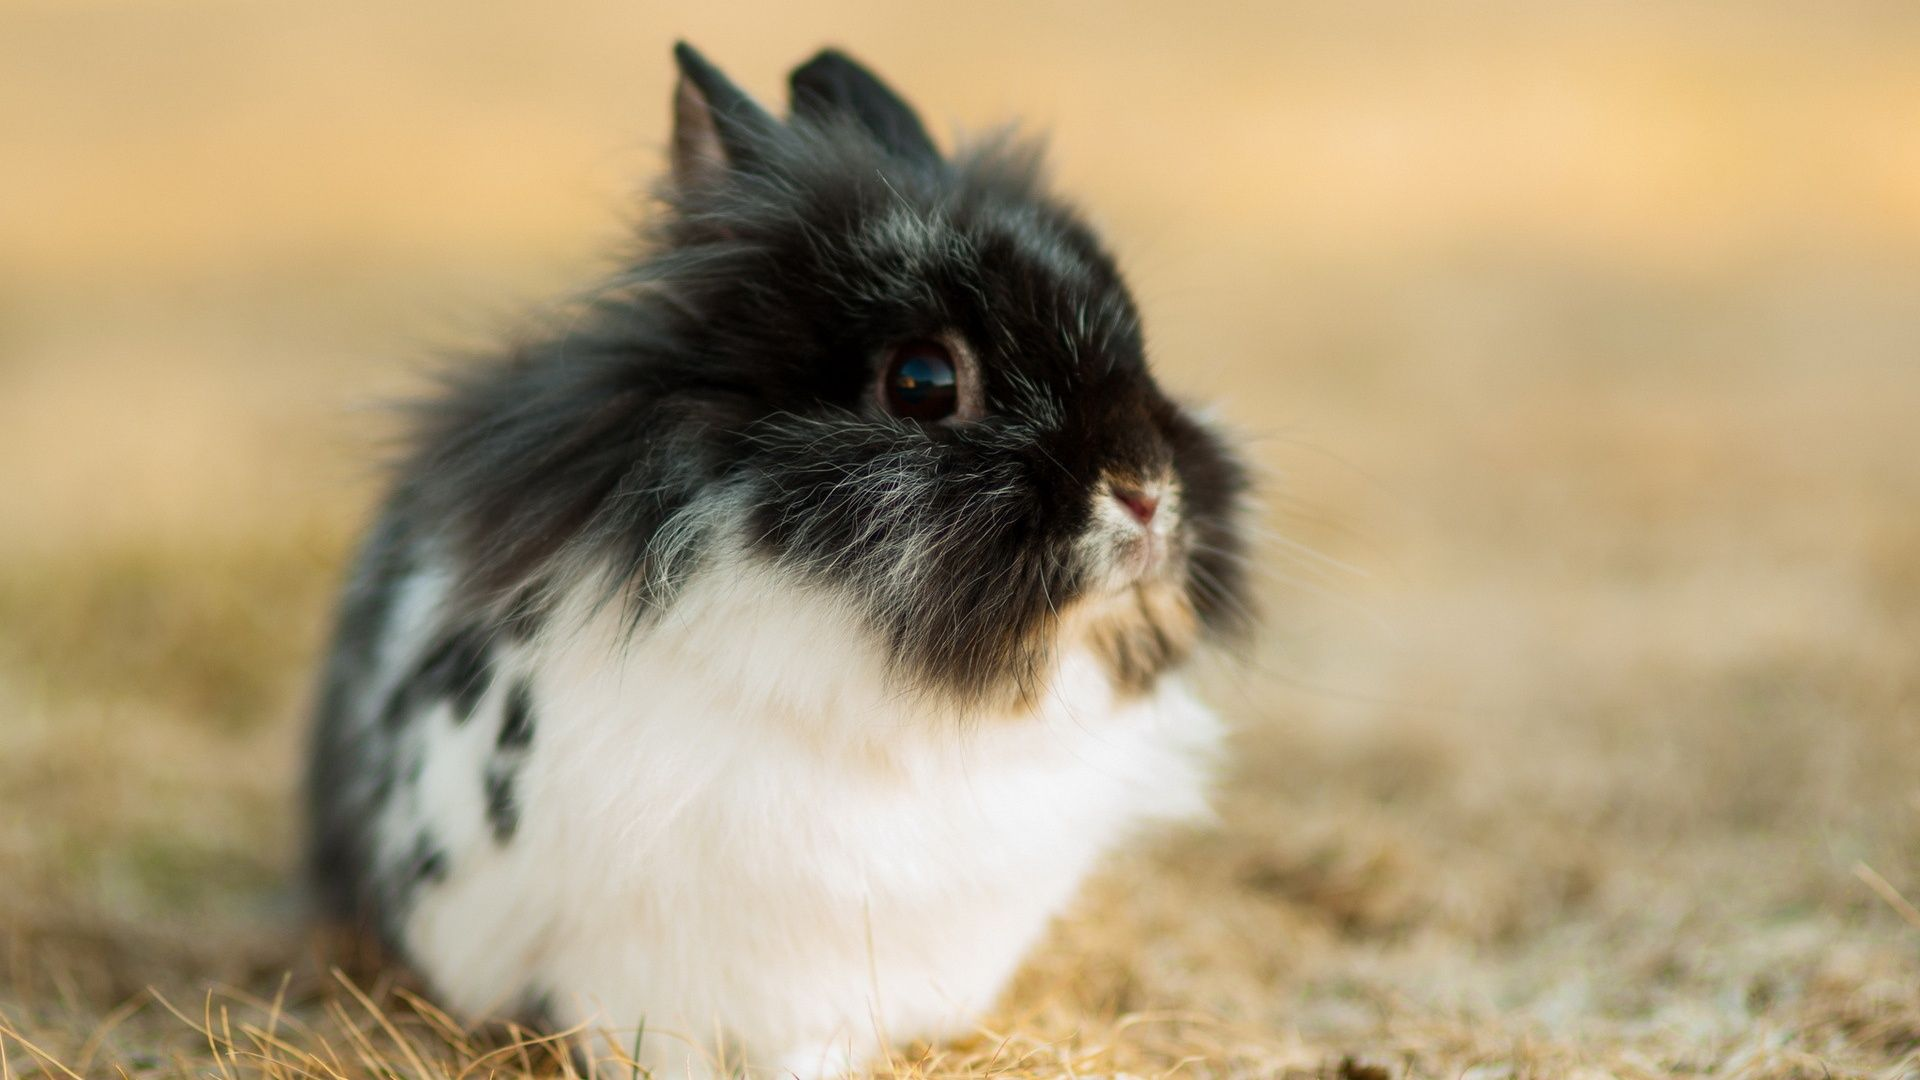 The Wallpapers Animals Rabbits